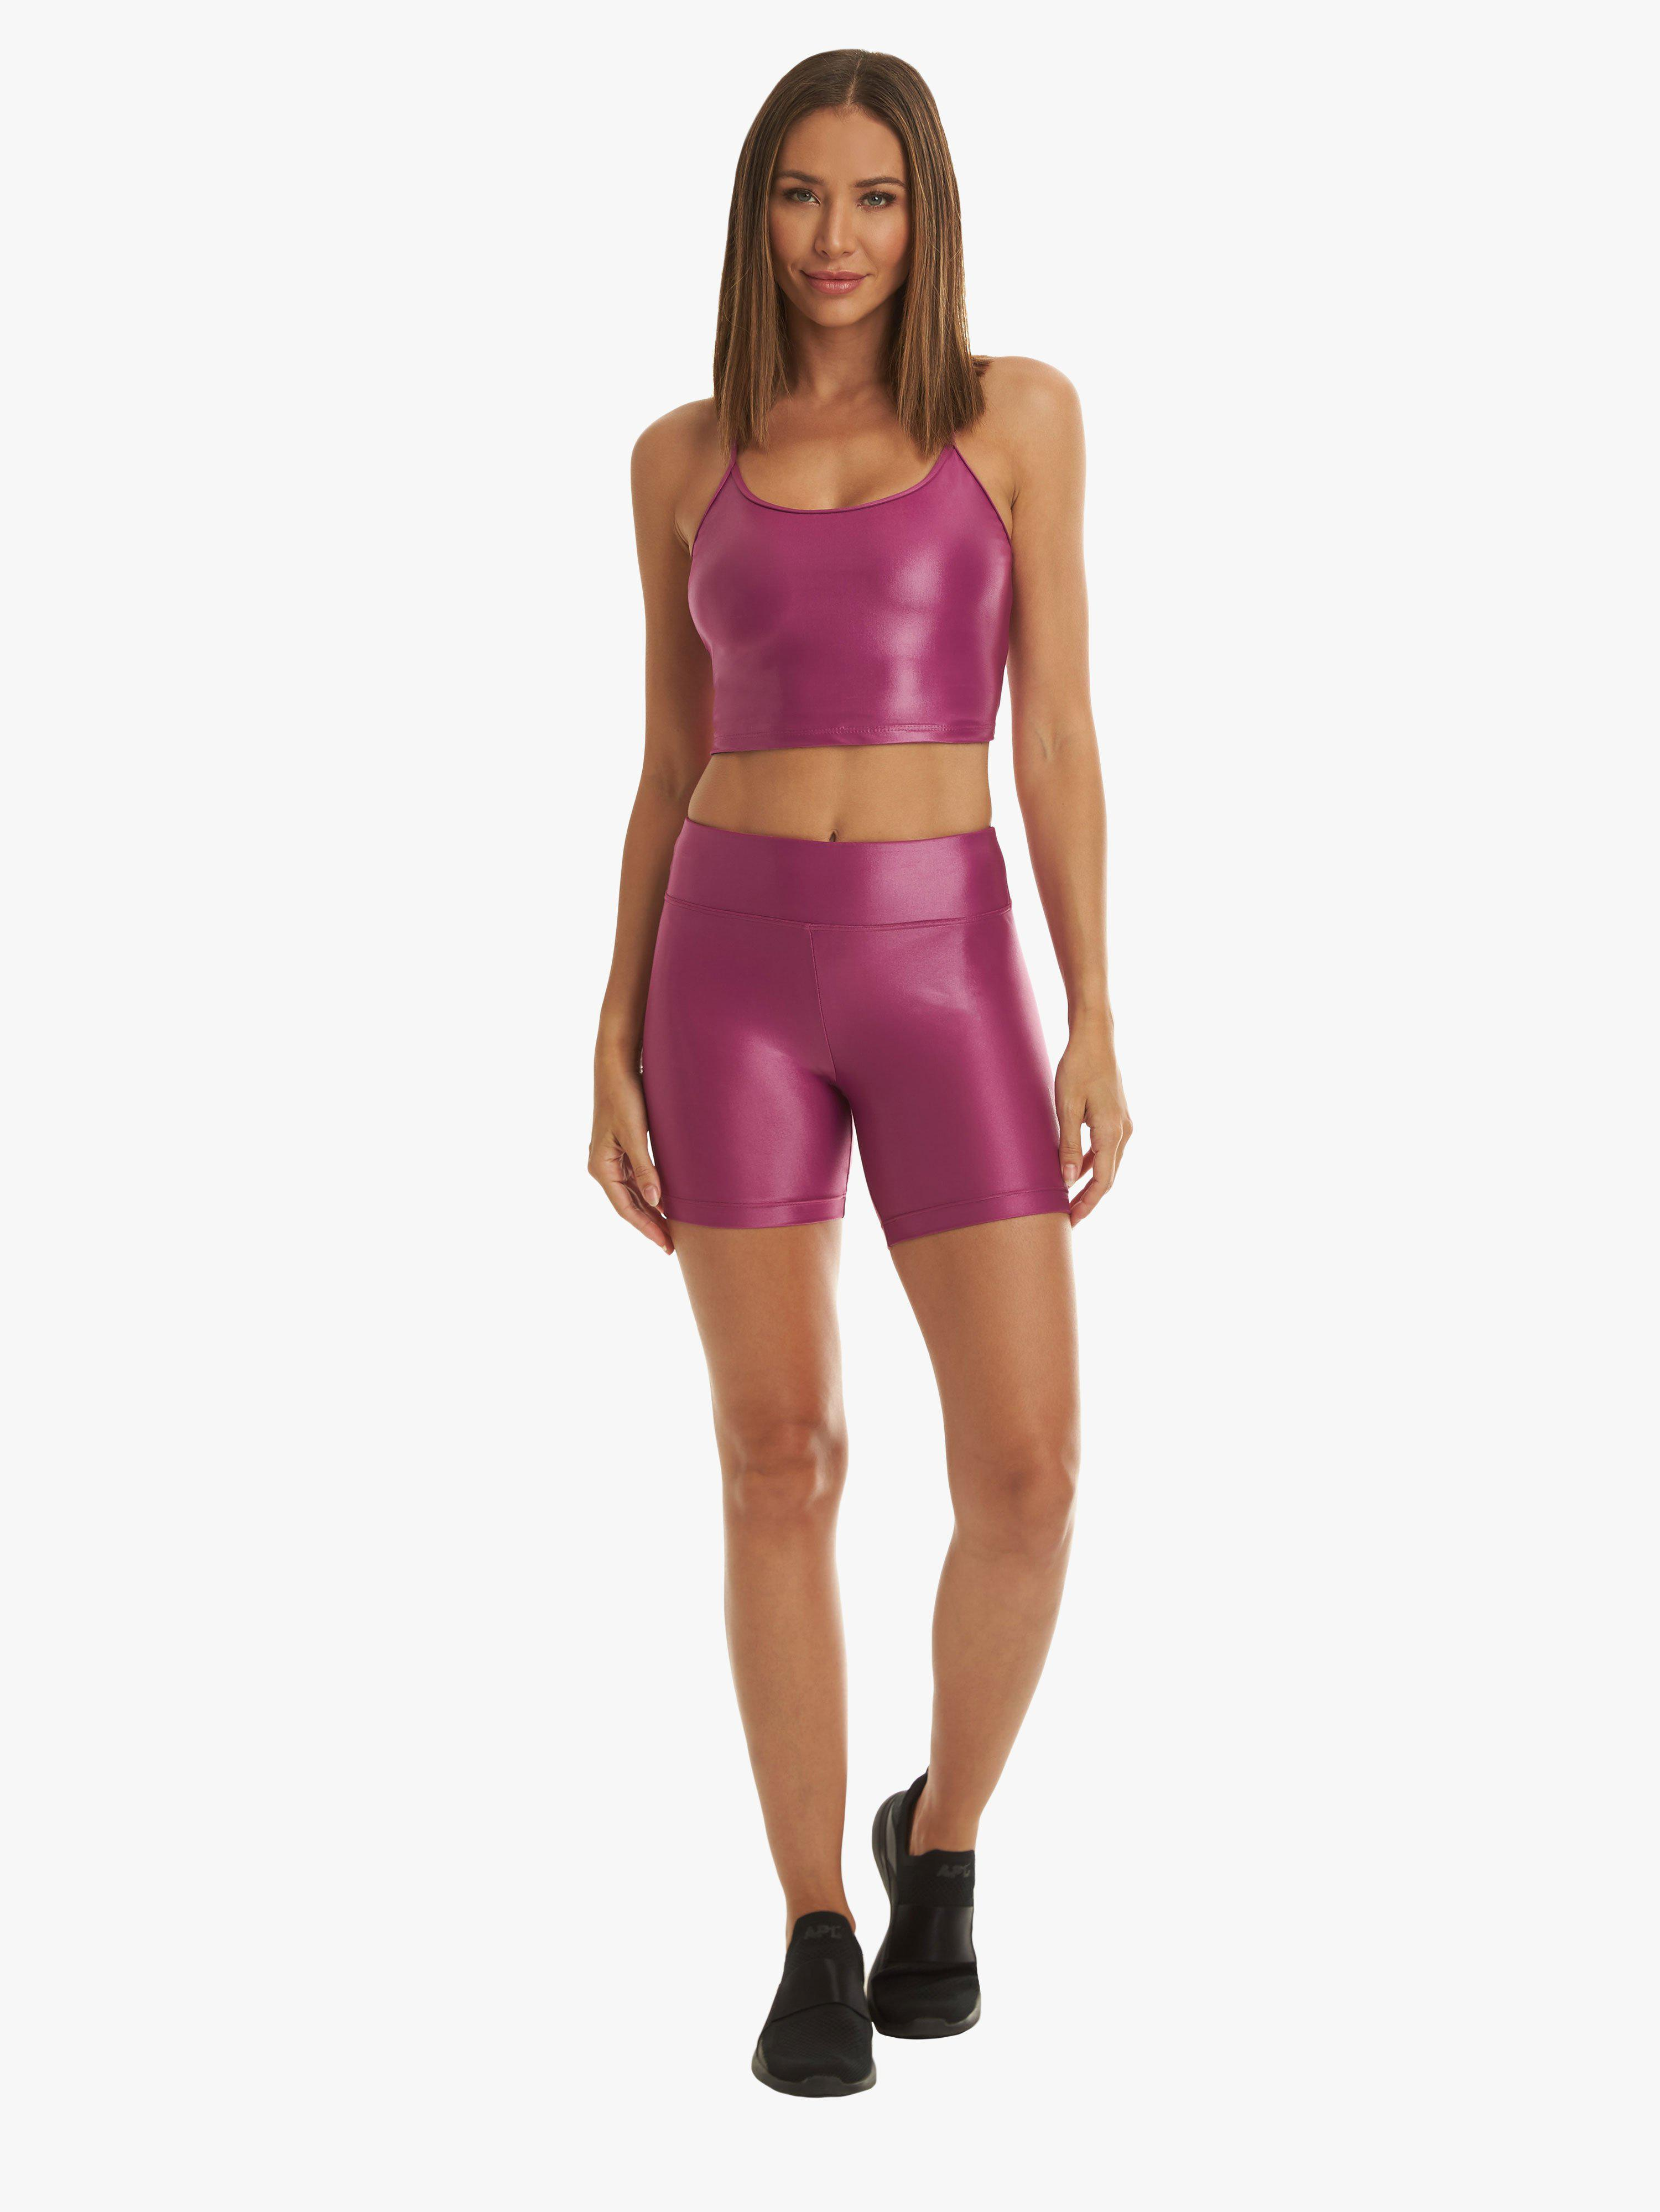 Slalom High Rise Infinity Shorts - Rose Orchid